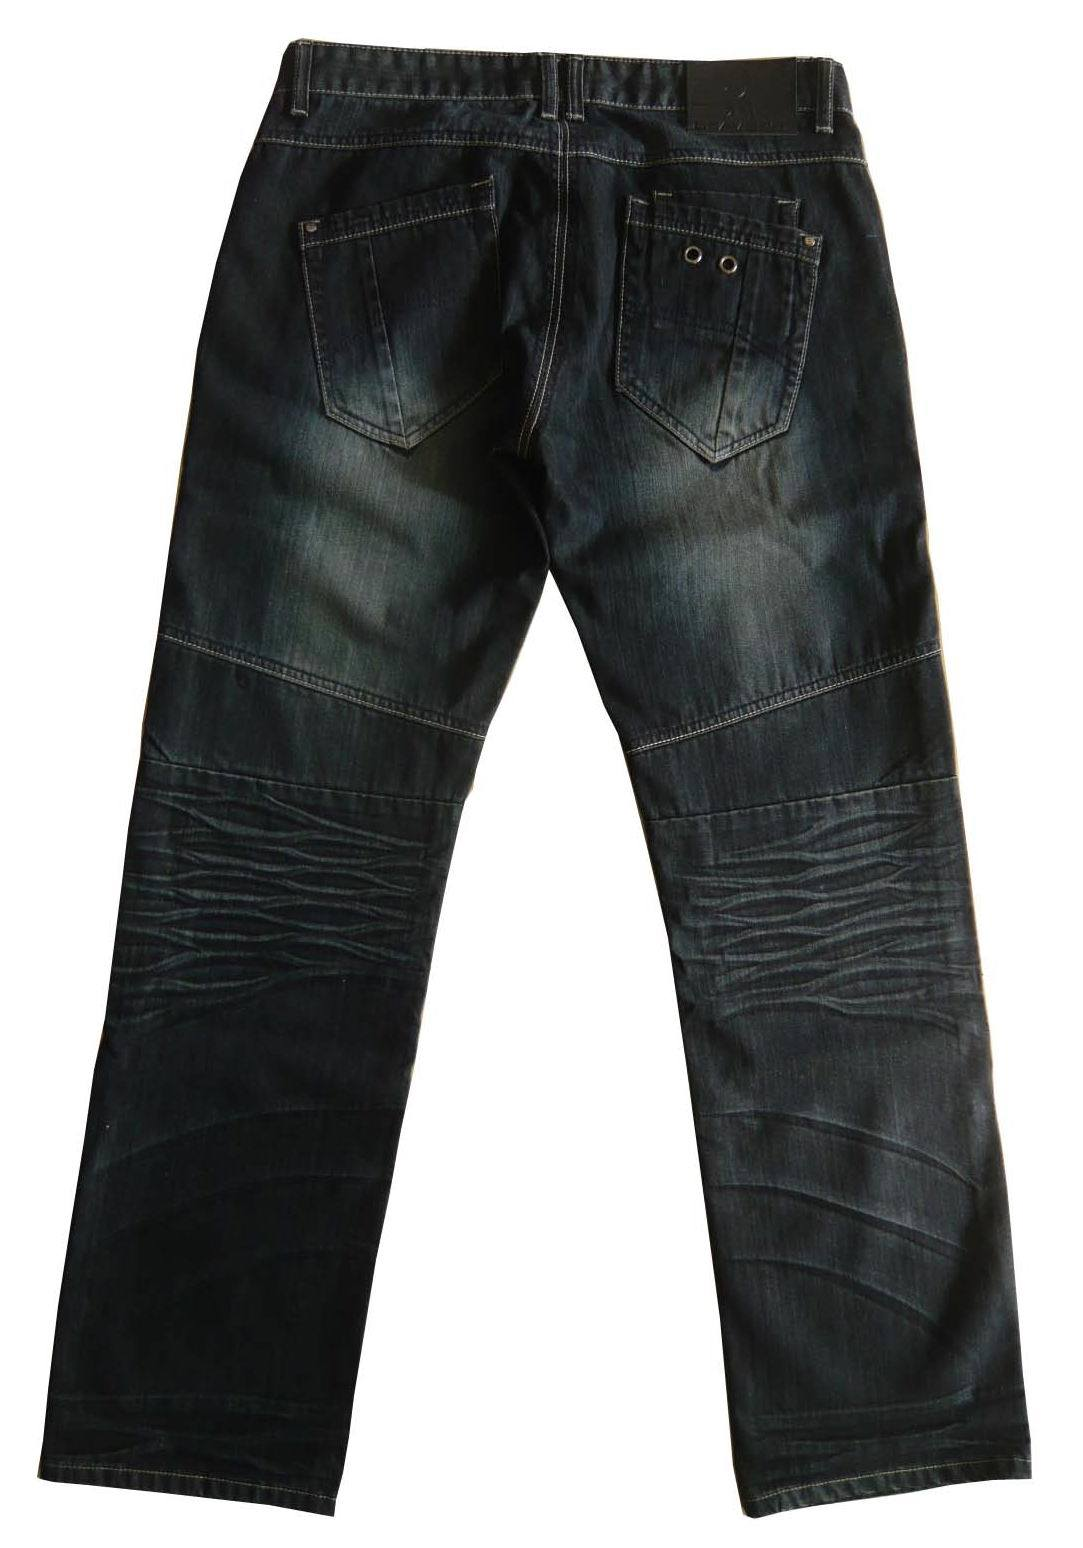 Denim Jeans, Fashion Mens Jeans (JP005)